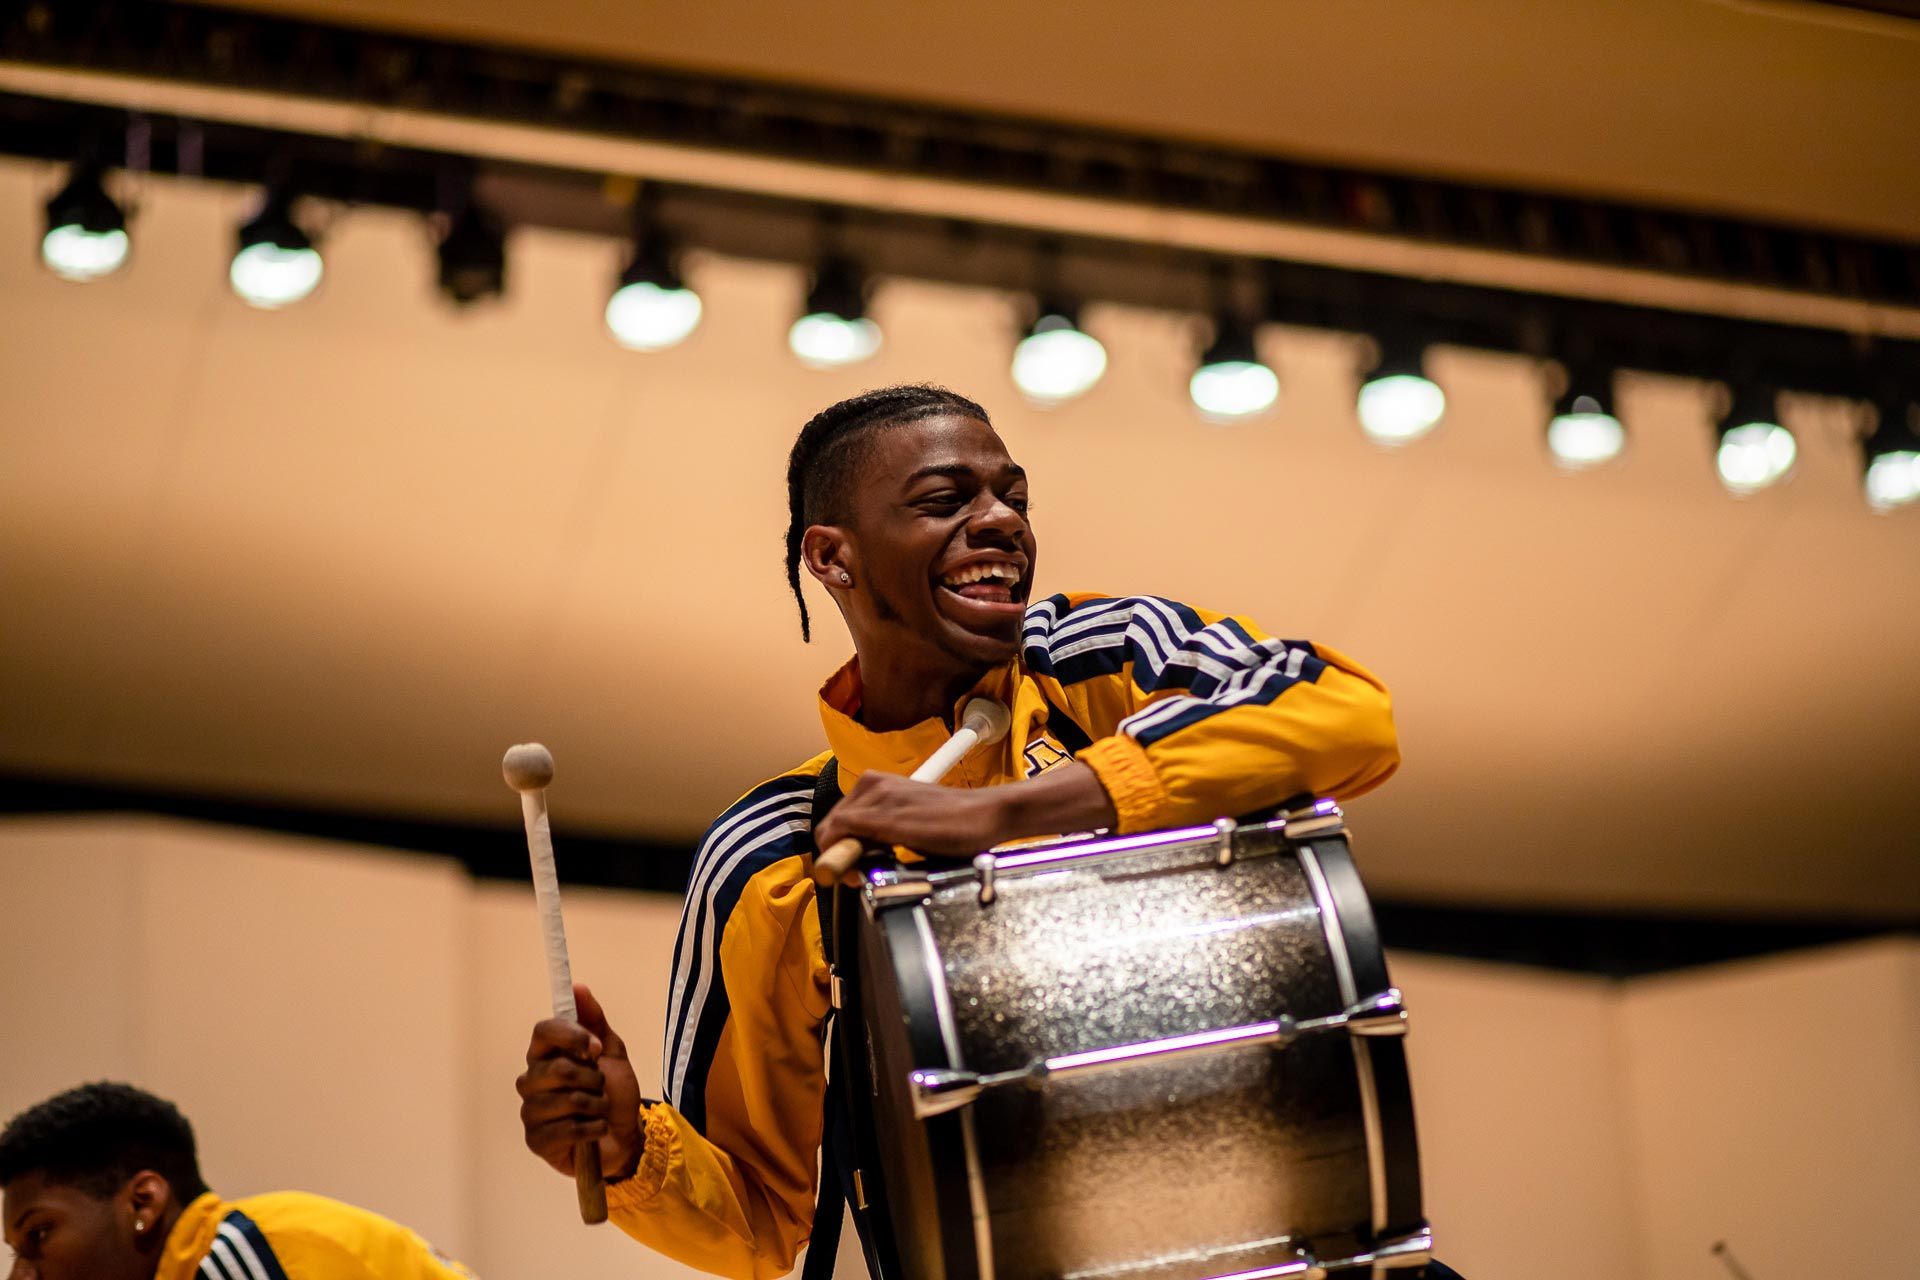 NC A&T's Coldsteel Drumline made some noise in Dana Auditorium!